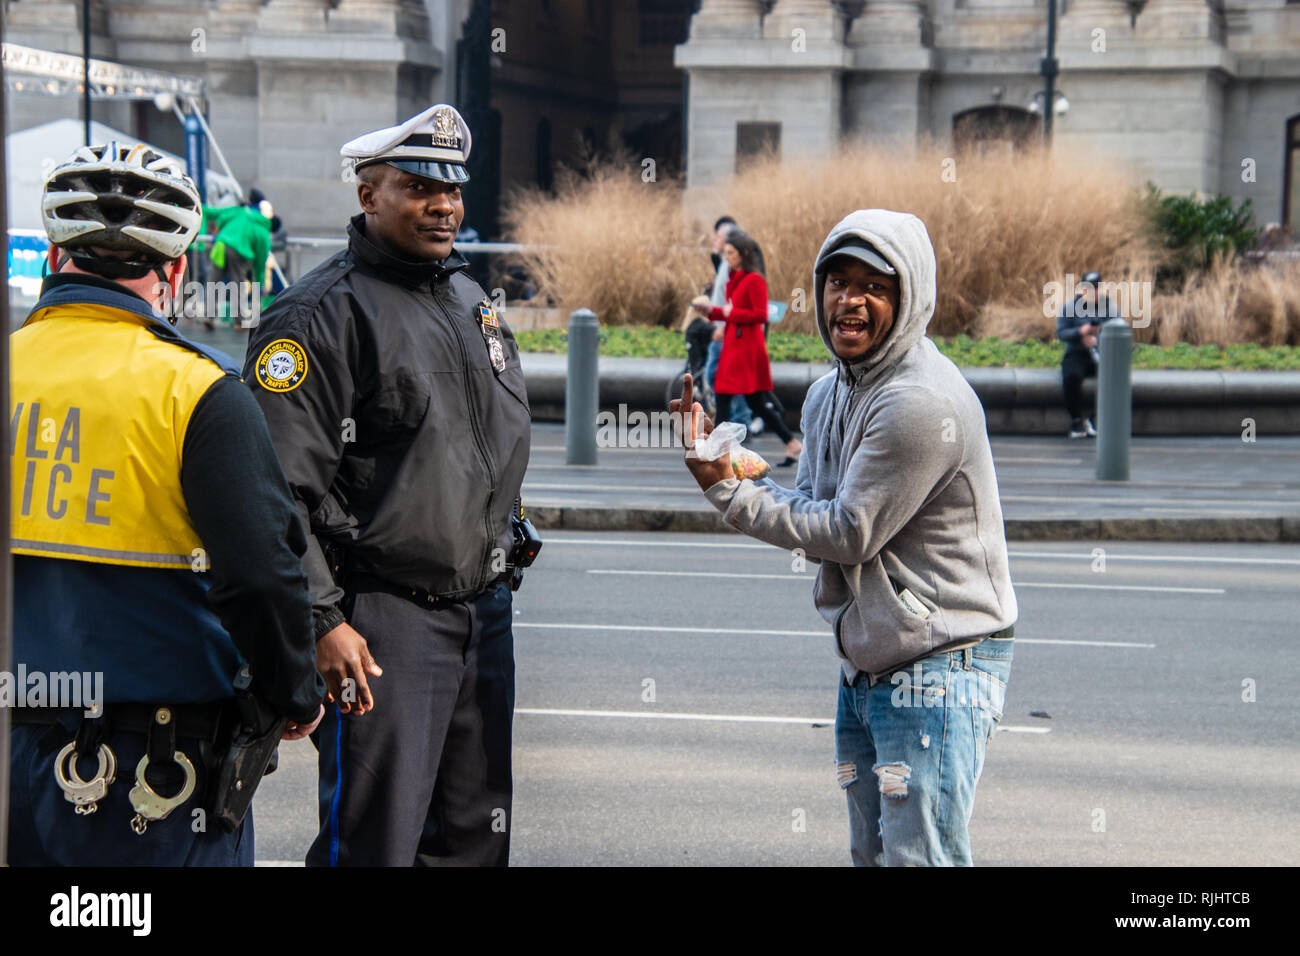 Philadelphia, Pennsylvania - February 5, 2019: Black male in hoodie swears at and gives the middle finger on both hands to a Caucasian police officer  - Stock Image